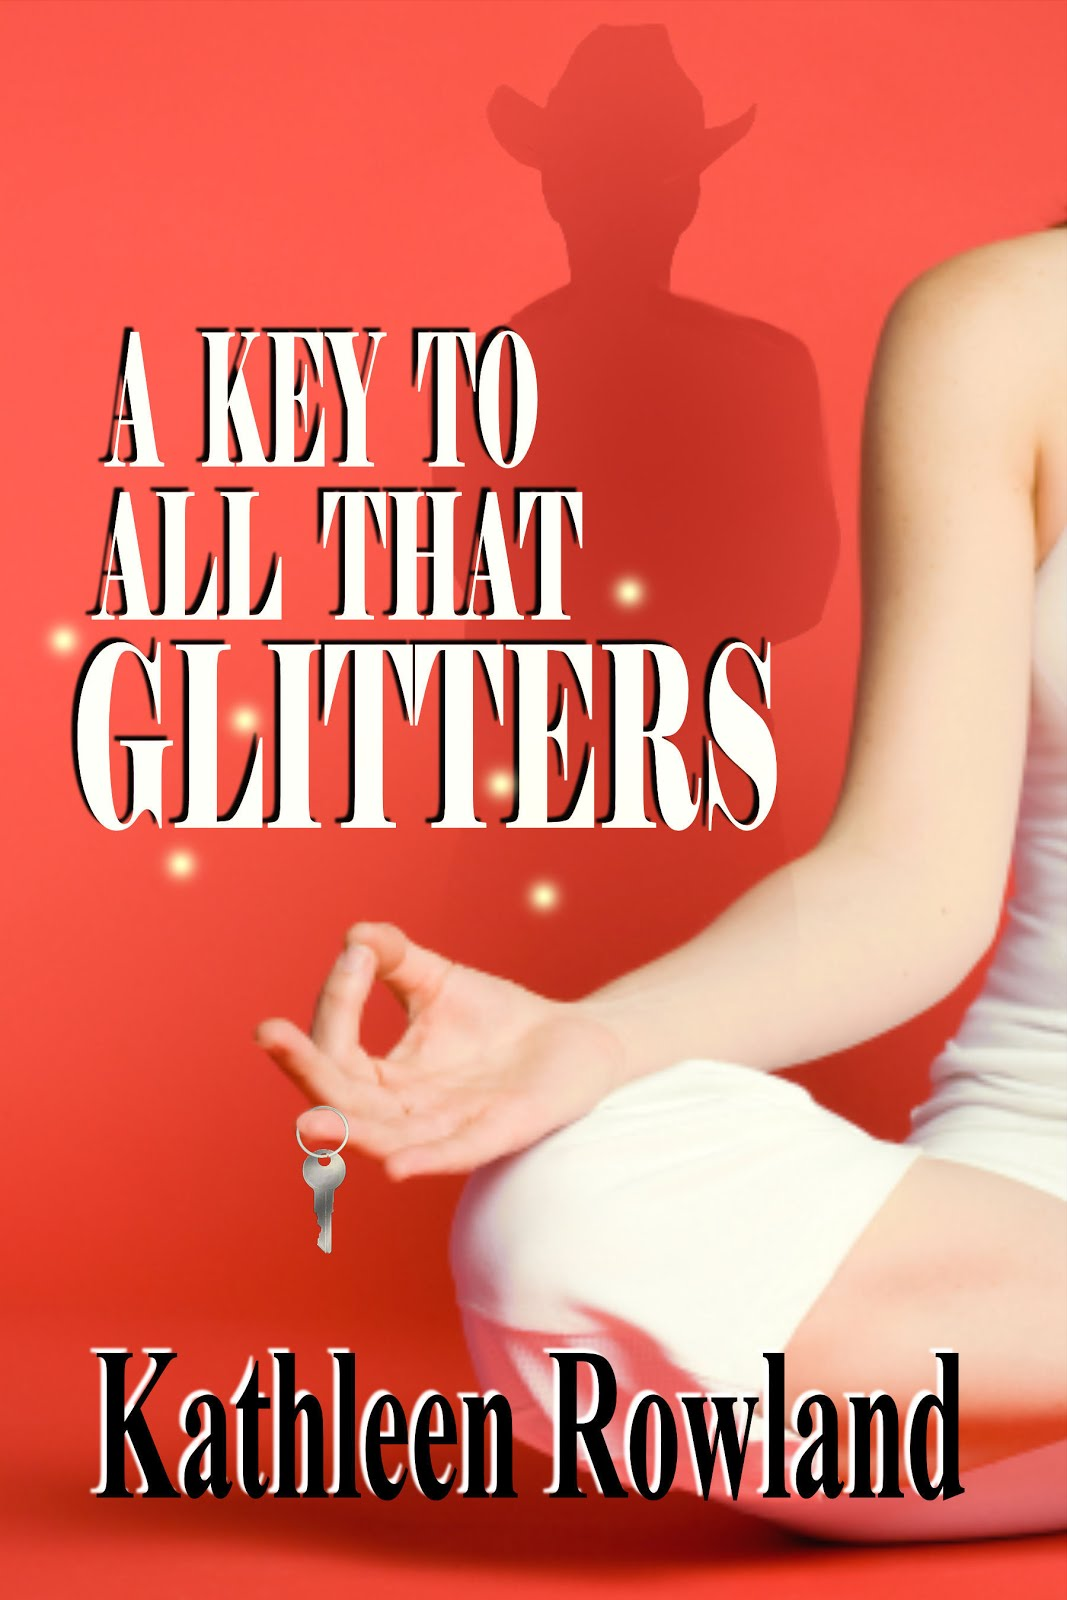 A Key to all that Glitters